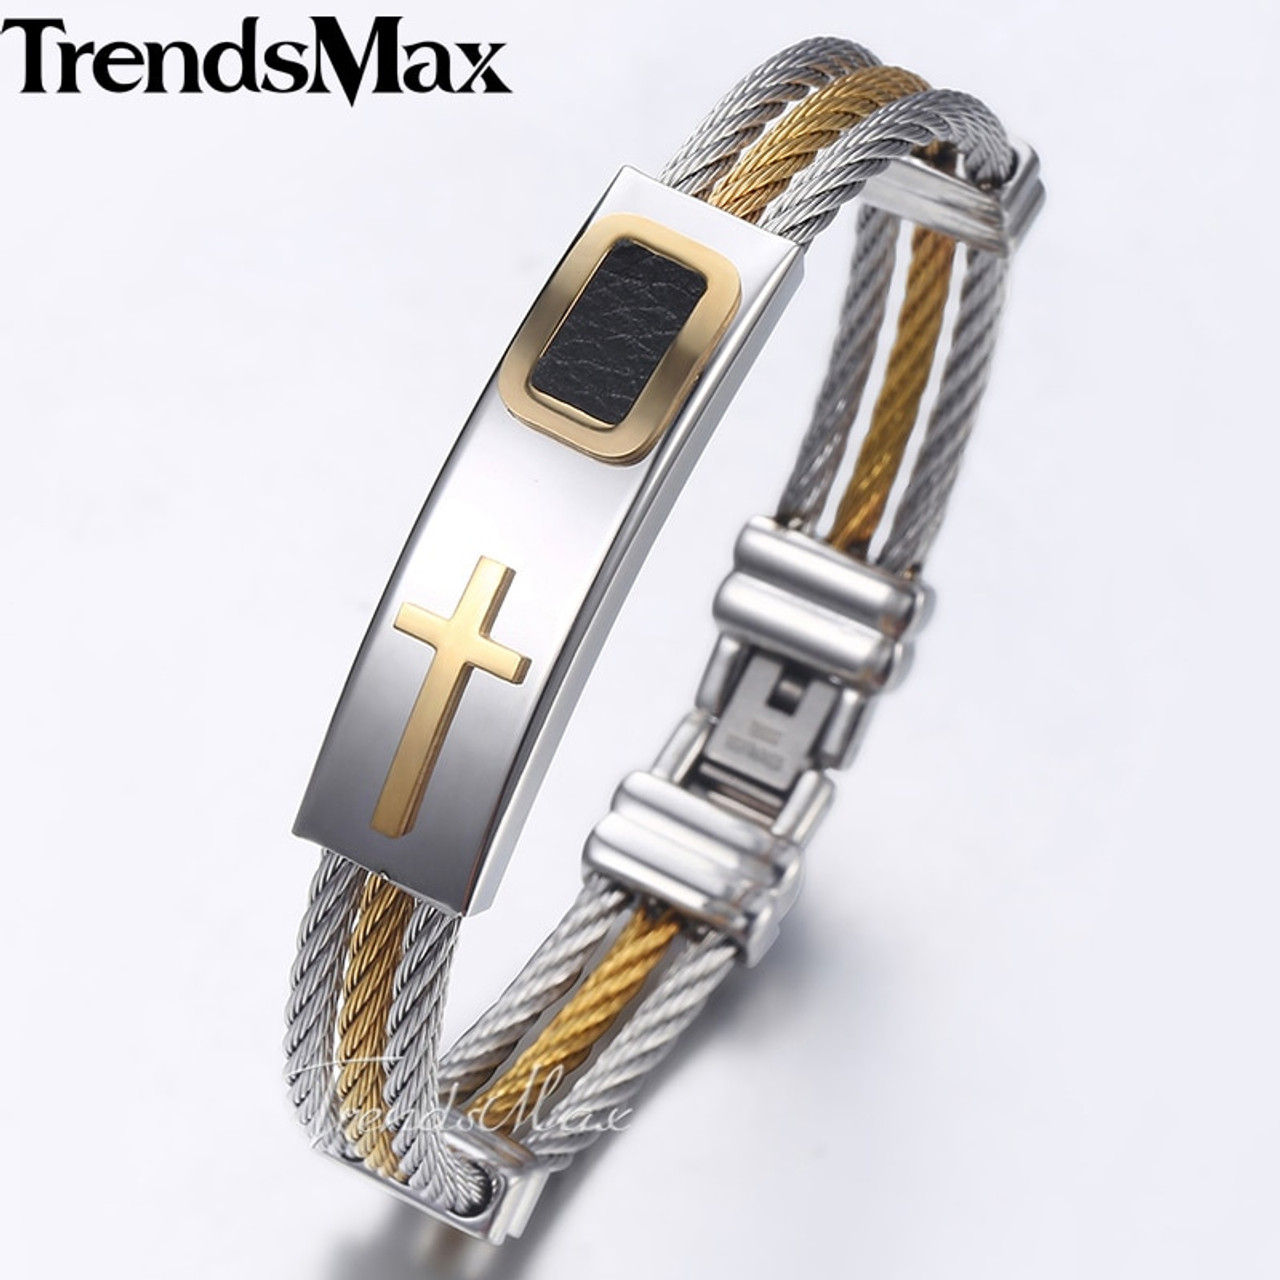 dde709d05b329 Trendsmax Men s Bracelet Bangle Cross ID Charm Stainless Steel 3 Strands Rope  Wristband Wholesale Dropshipping Jewelry ...